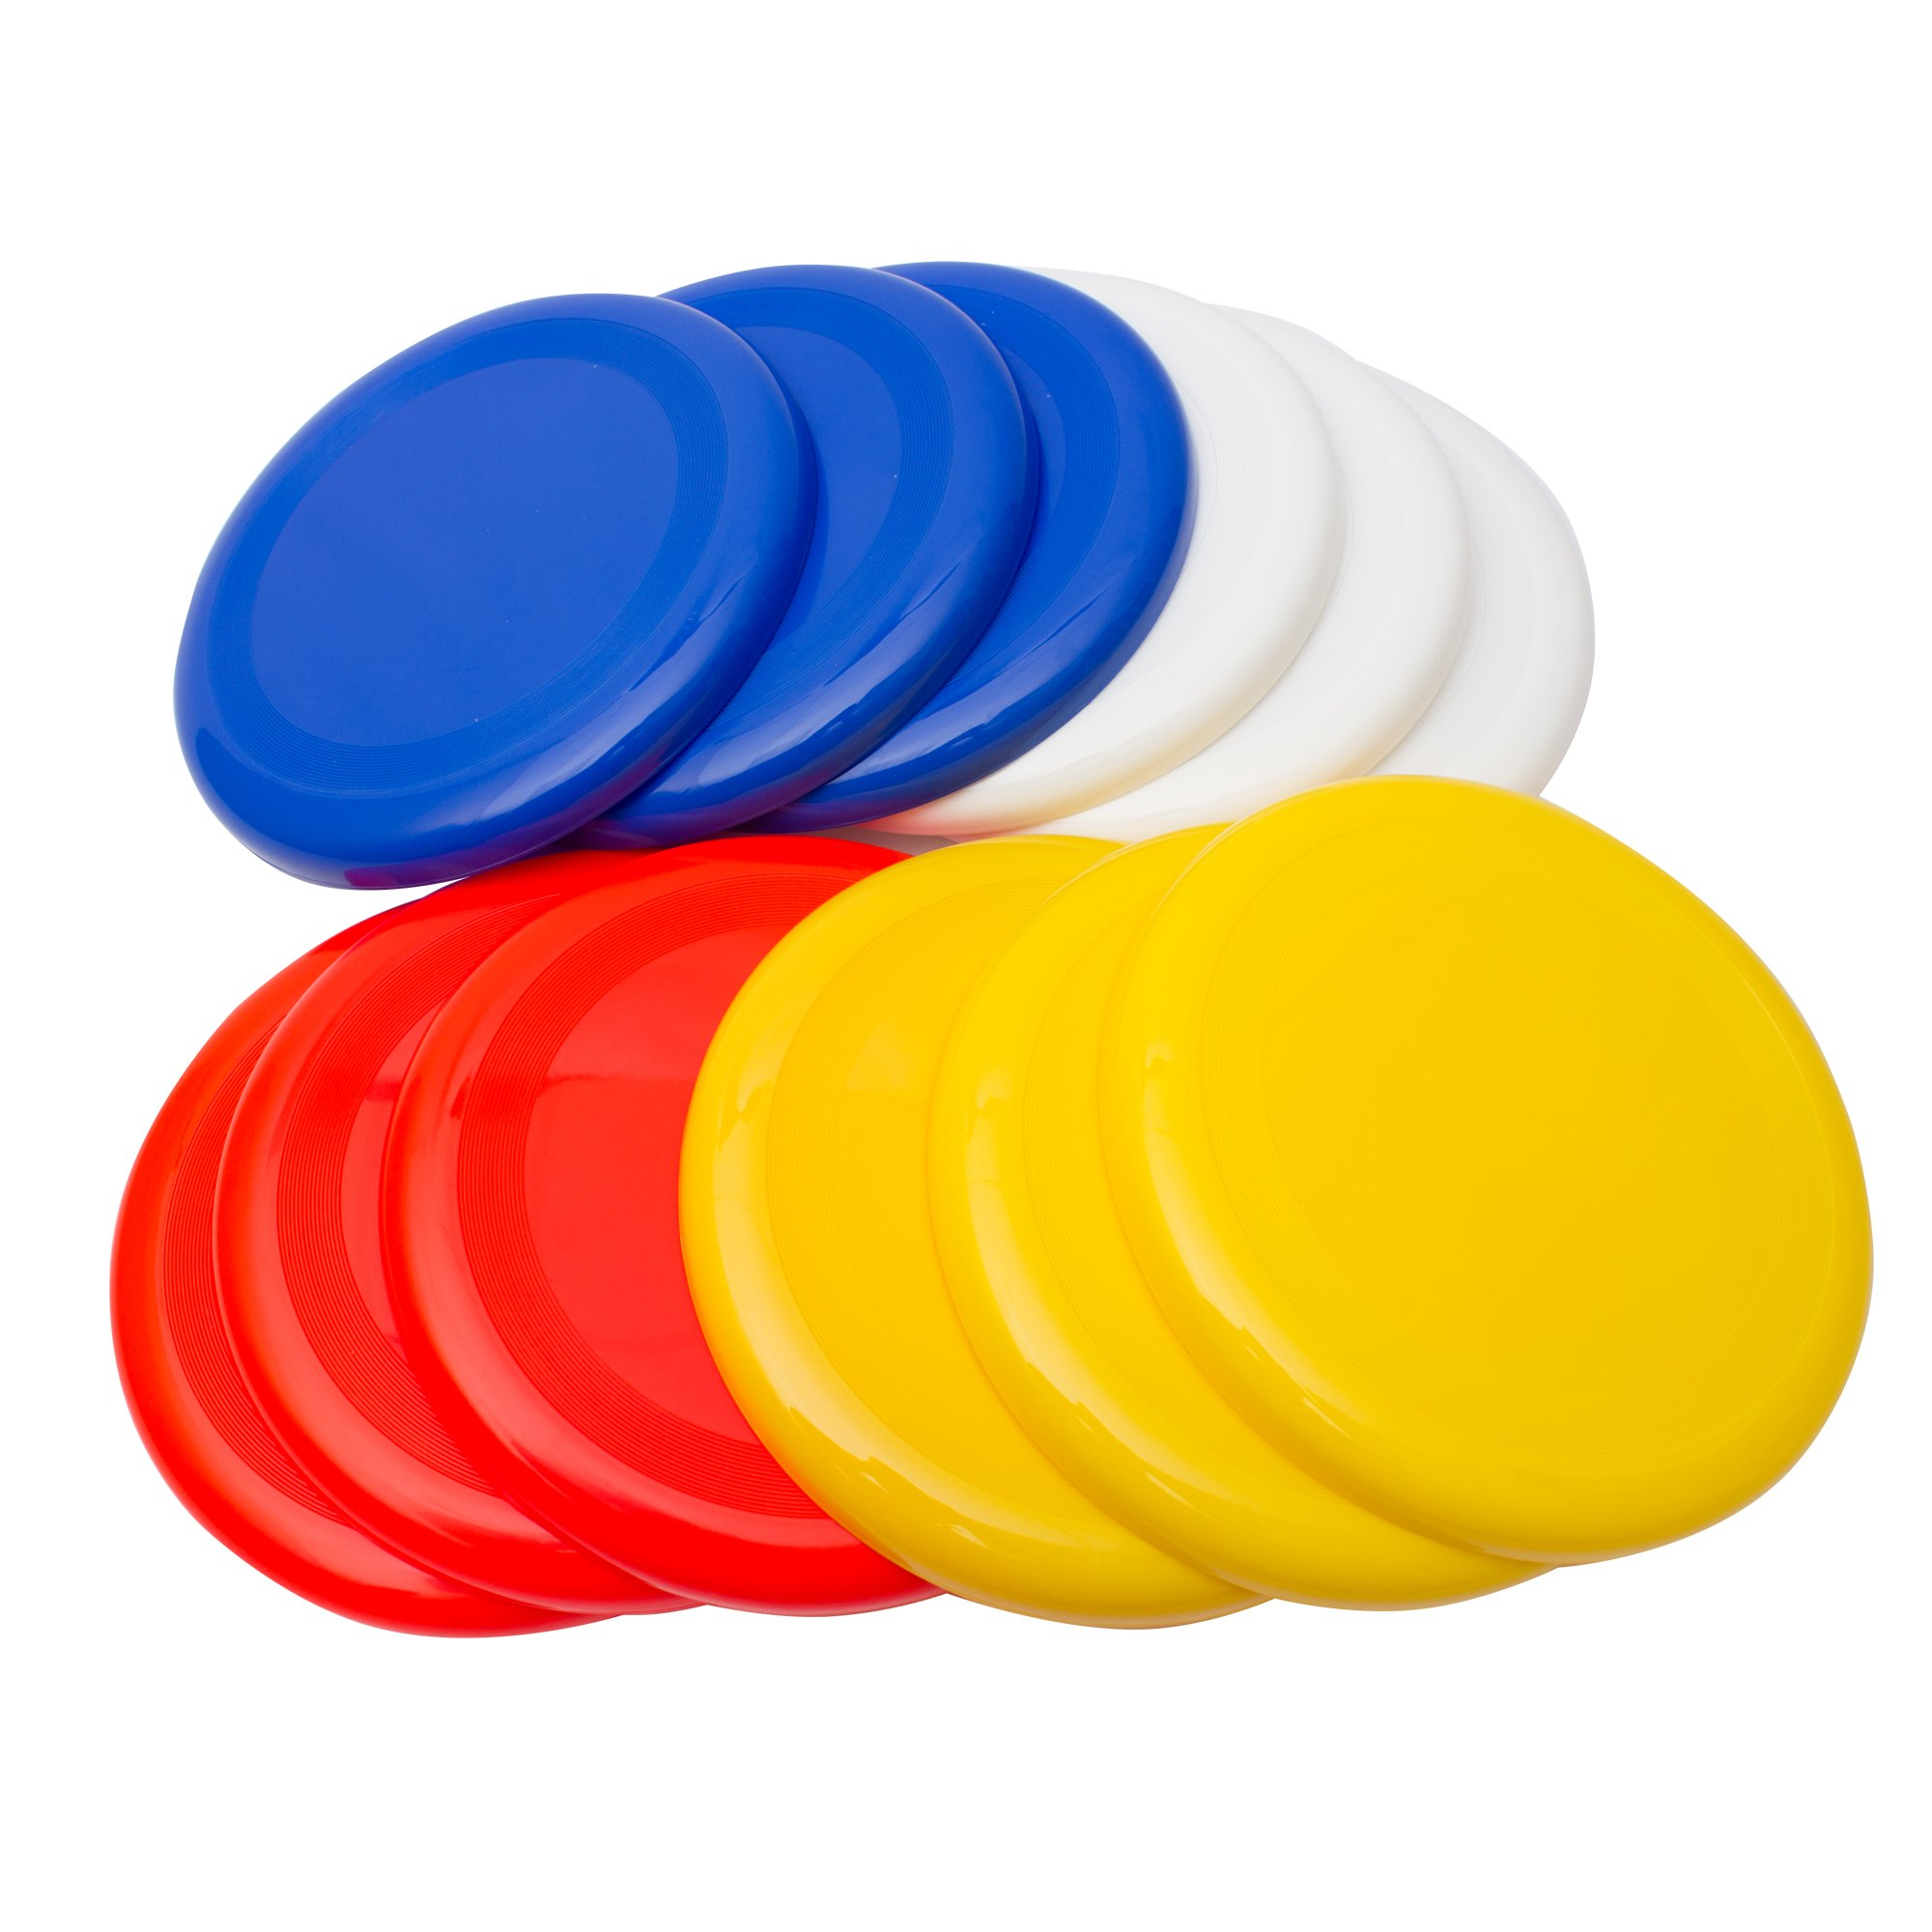 Fun Central AU203 10'' Frisbee Plastic Flying Disc Dog Frisbee Golf Discs Ultimate Frisbee Disc, Multicolor-for Outside Play Family Fun Time- pack of 12 (red, white, yellow, blue) by Fun Central